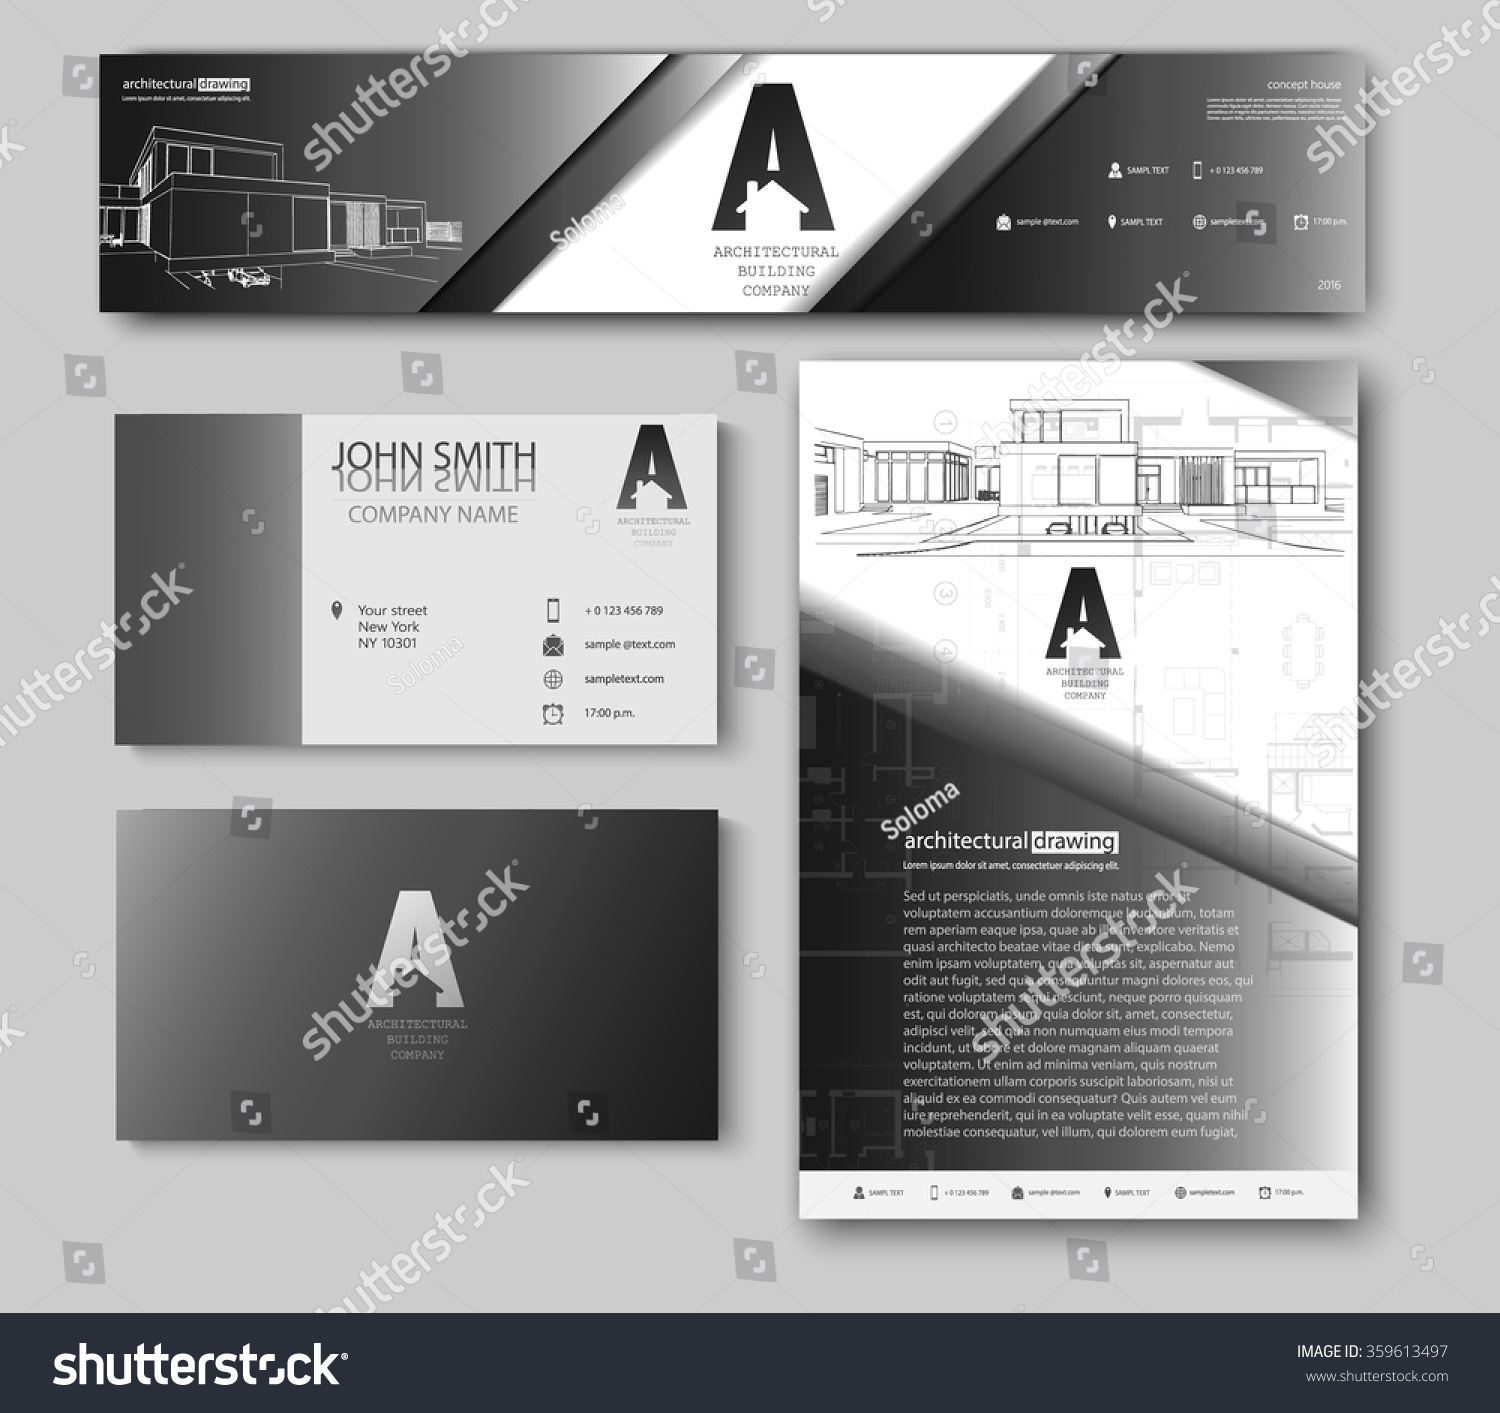 Business cards design blueprint sketch architectural vectores en business cards design with blueprint sketch for architectural company architectural background for architectural project malvernweather Choice Image